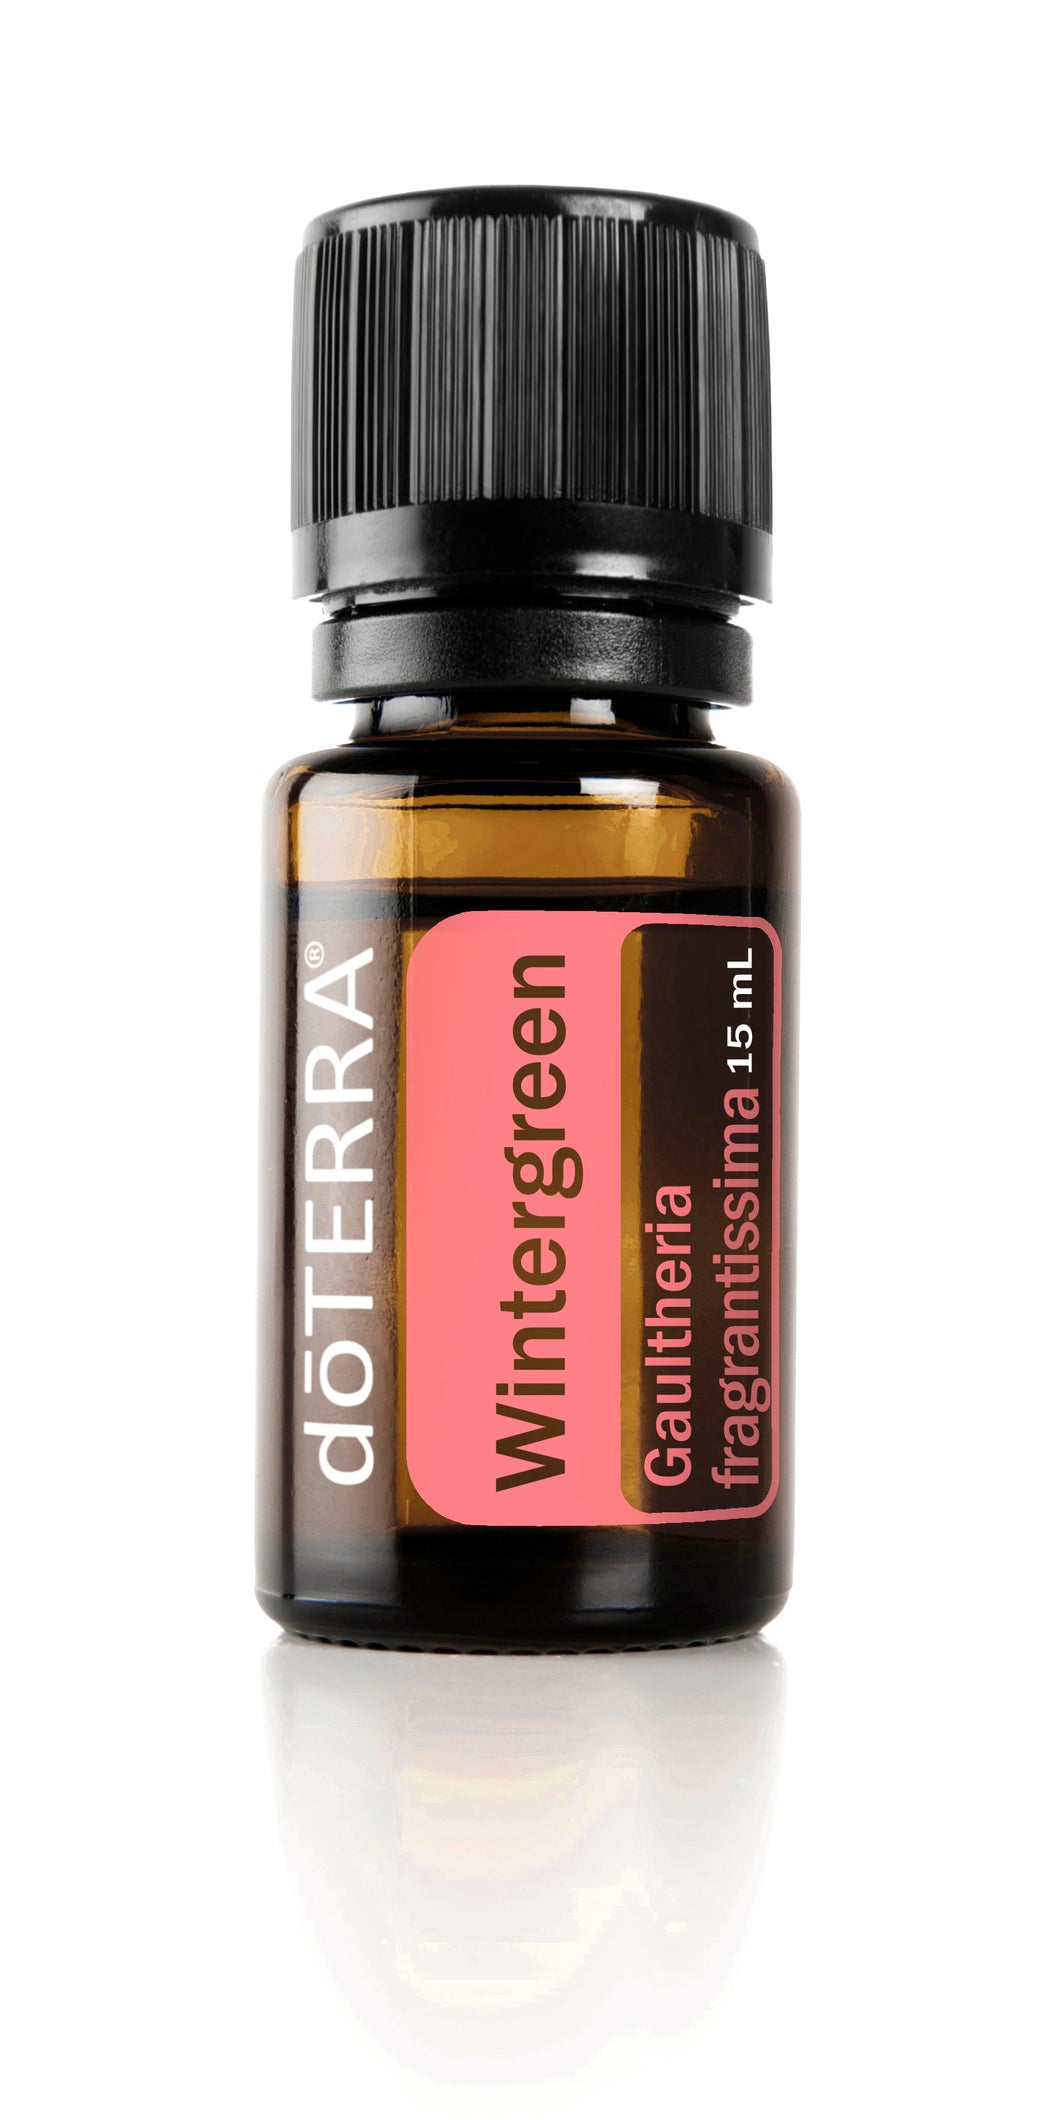 Wintergreen – gaultheria fragrantissima